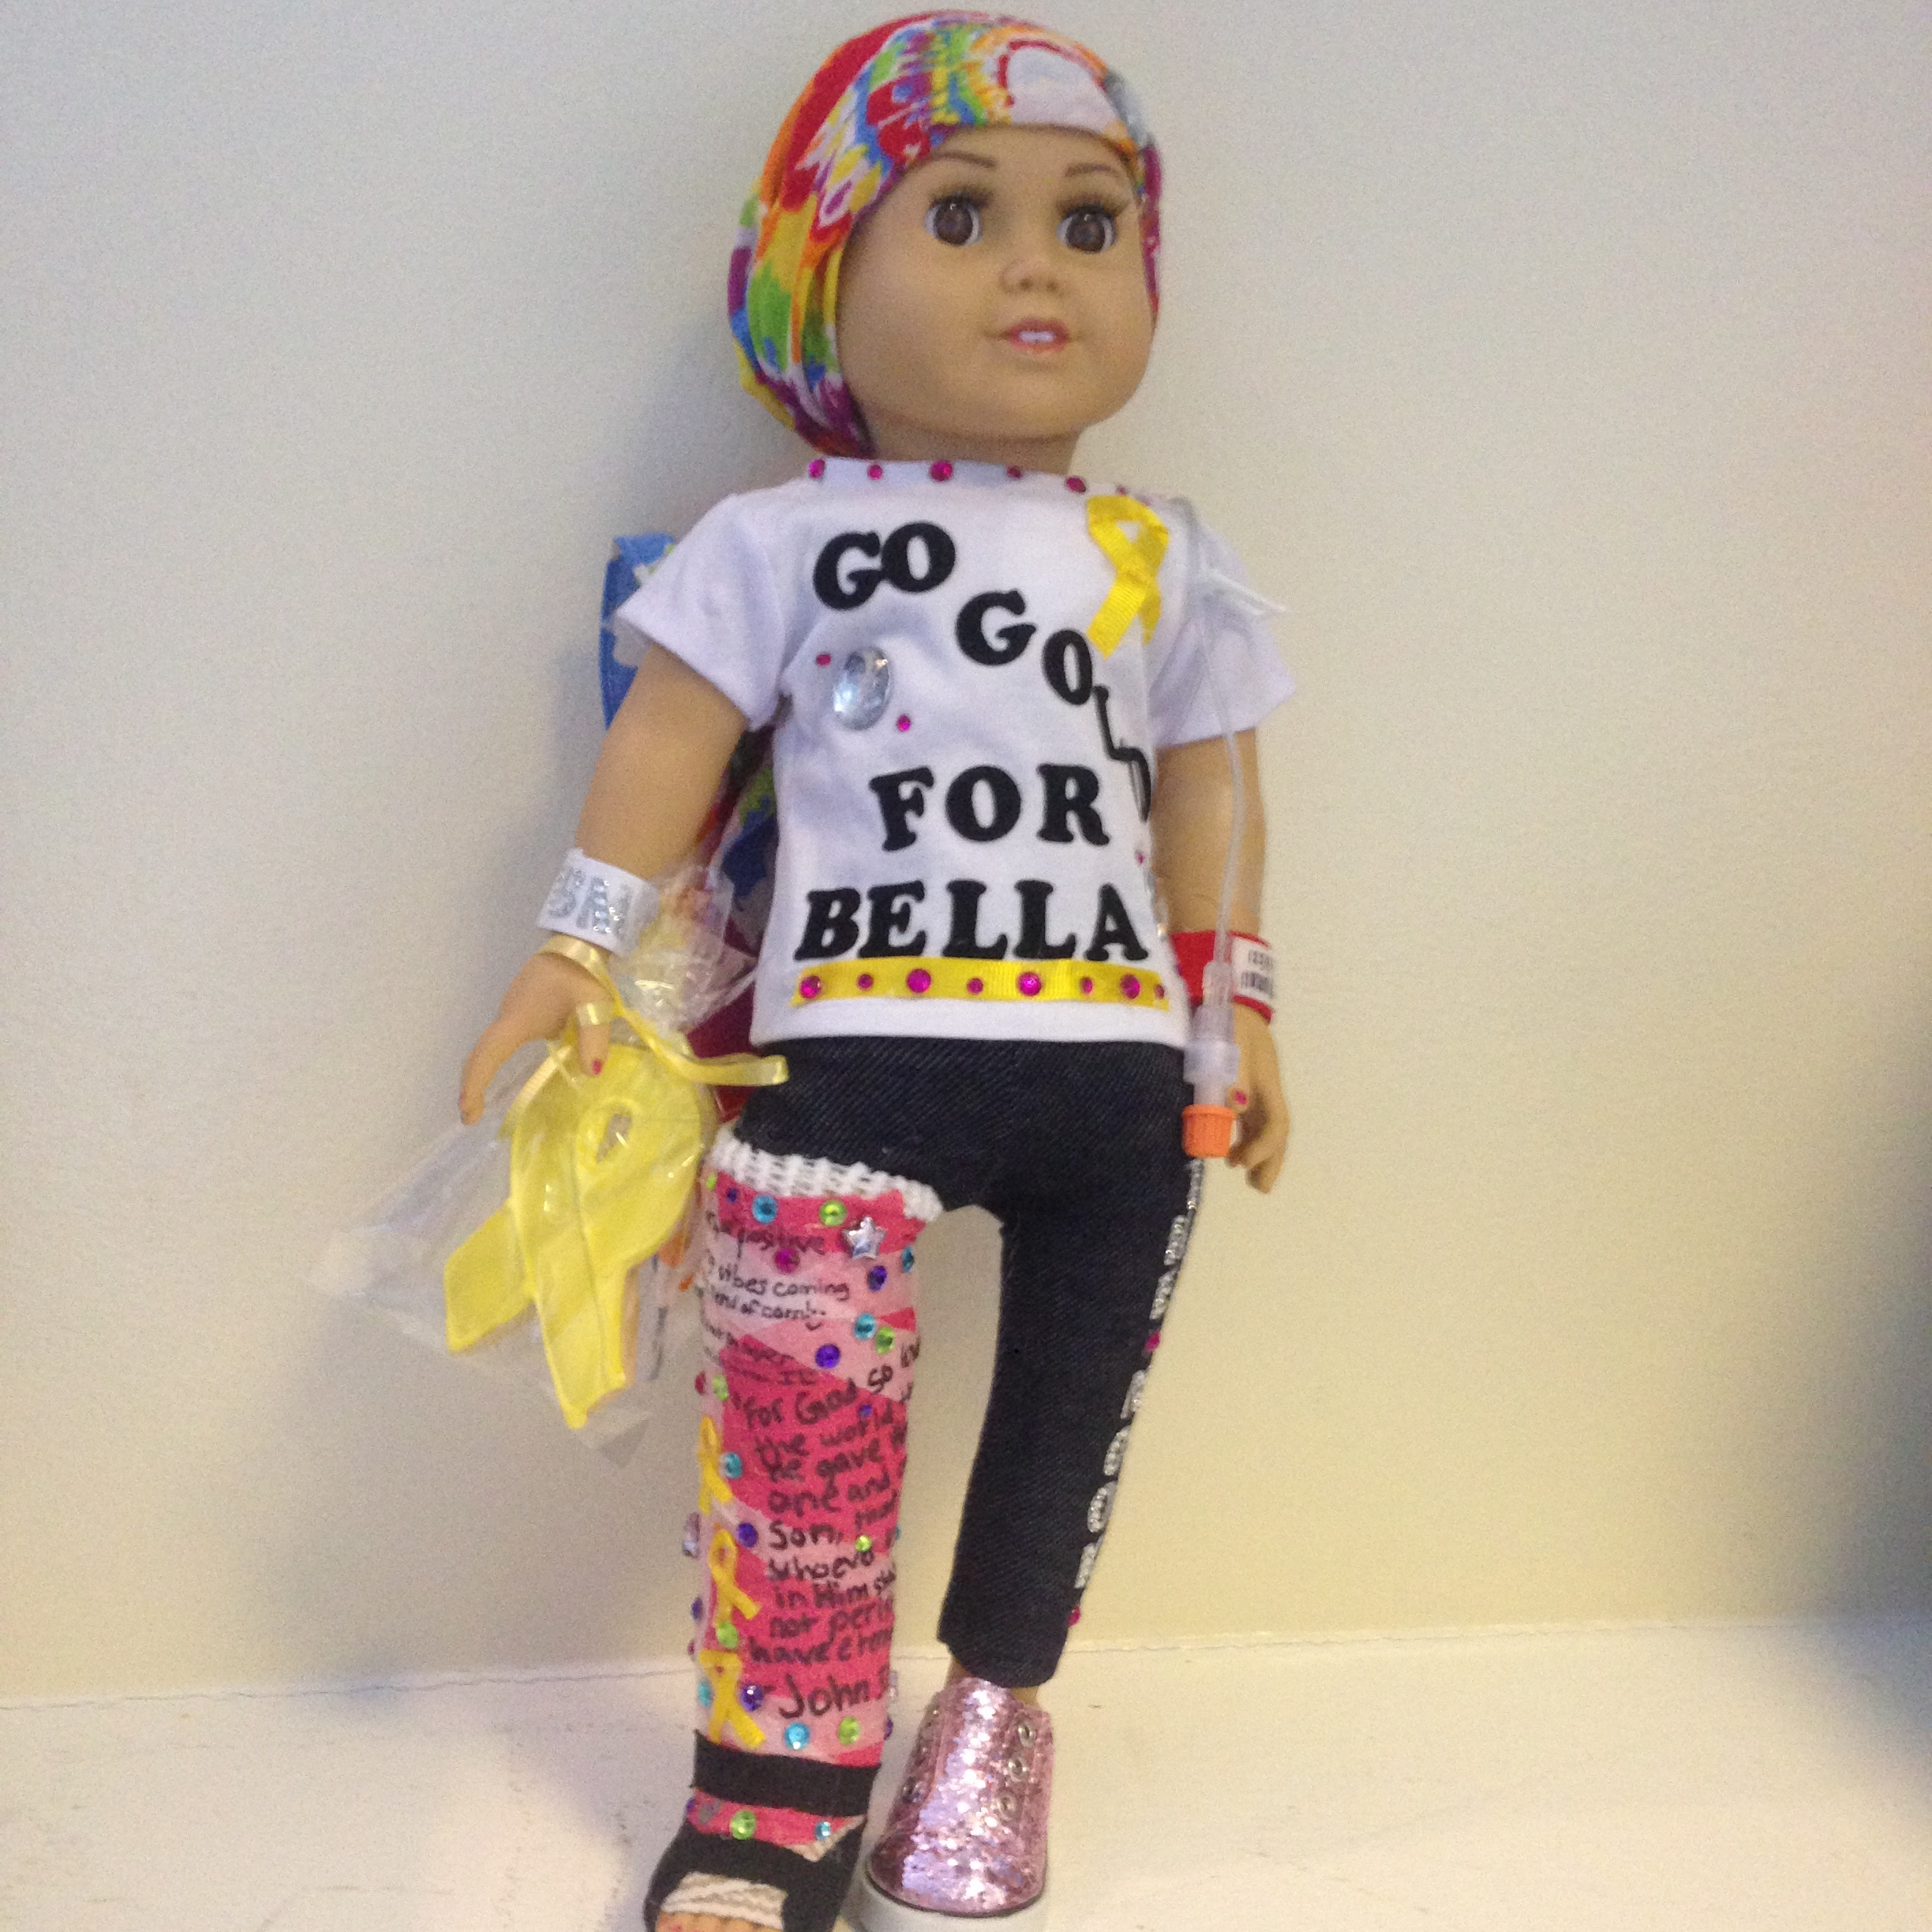 Custom made doll to look like Bella by cancer patient and dear friend, Molly.